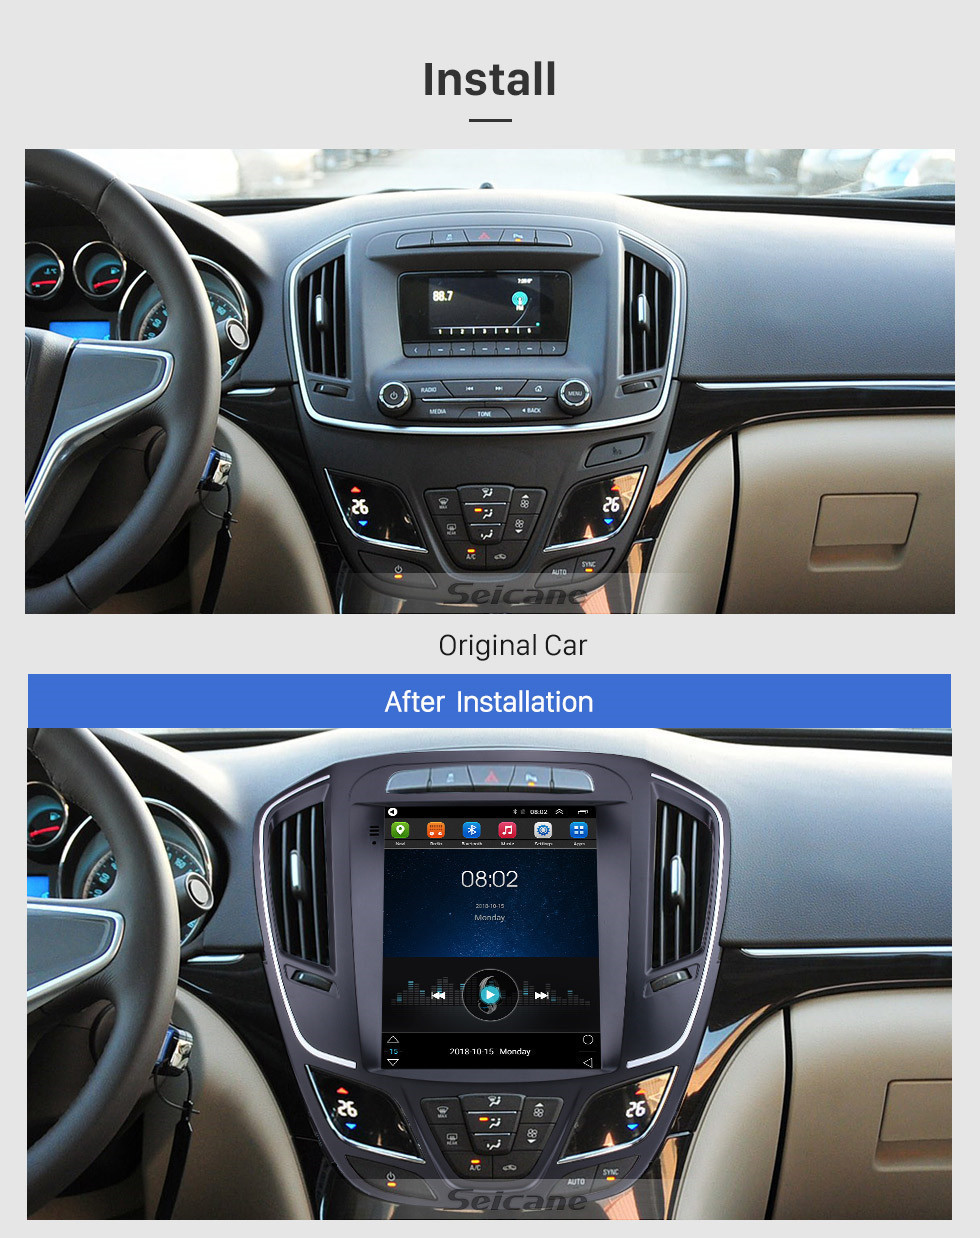 Seicane 9.7 Inch 2014 Buick Regal Android 9.1 Touch Screen Radio GPS Navigation System Support Mirror link DVR USB 1080P Video 4G WIFI Rearview Camera TV Steering Wheel Control